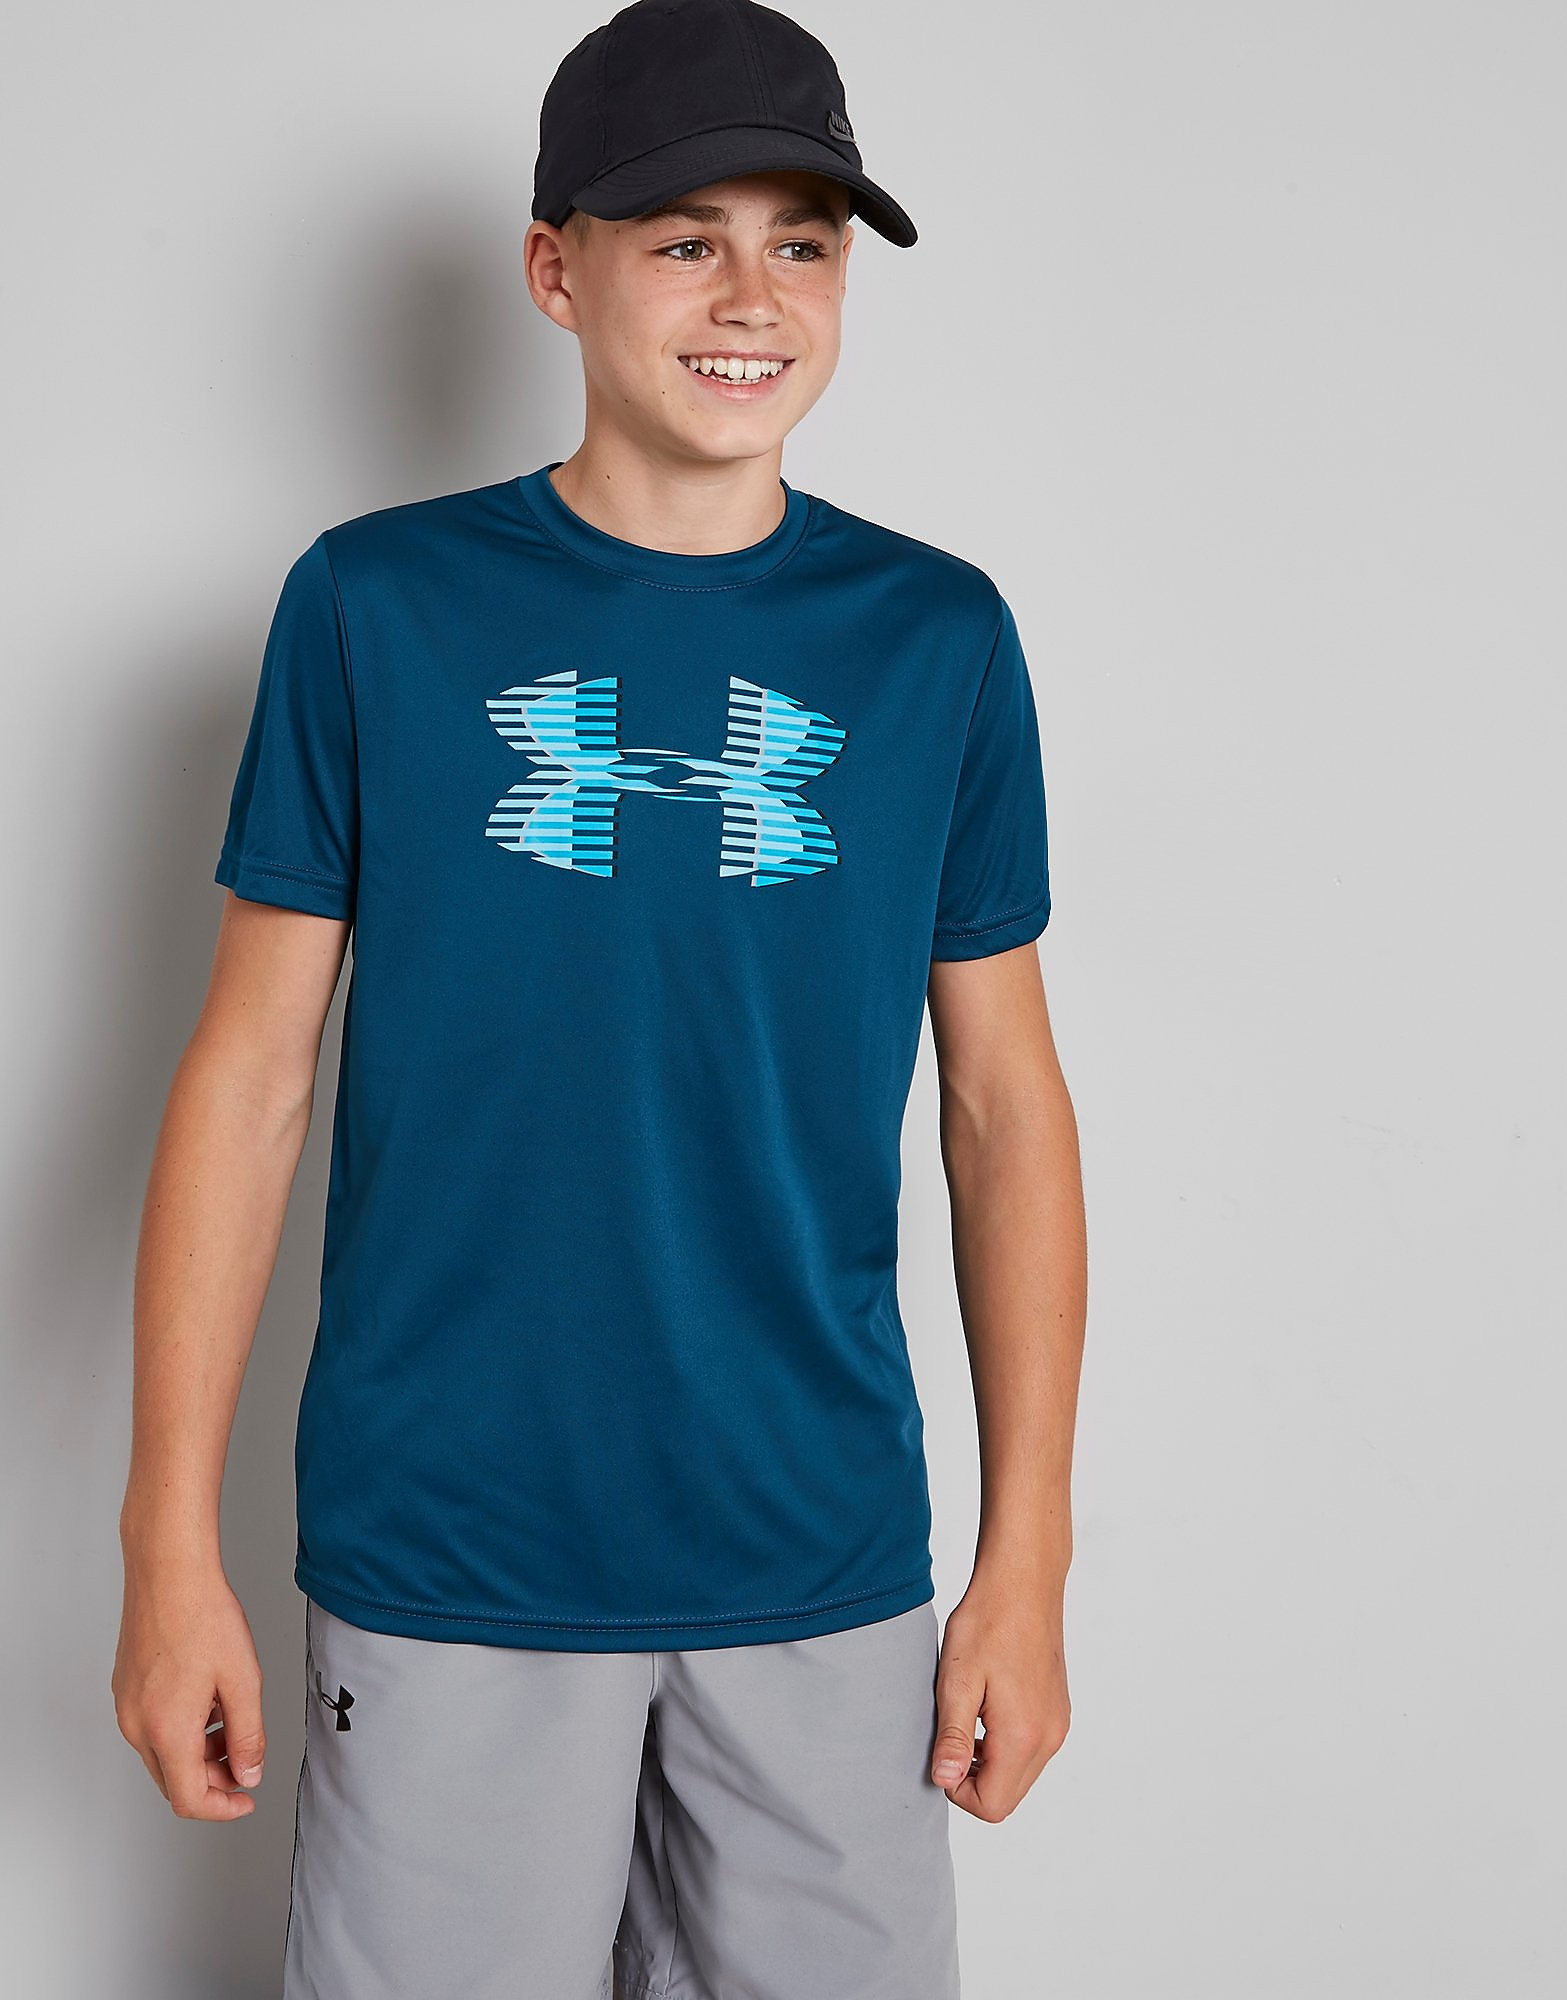 Under Armour Tech Logo T-Shirt Junior - Teal - Kind